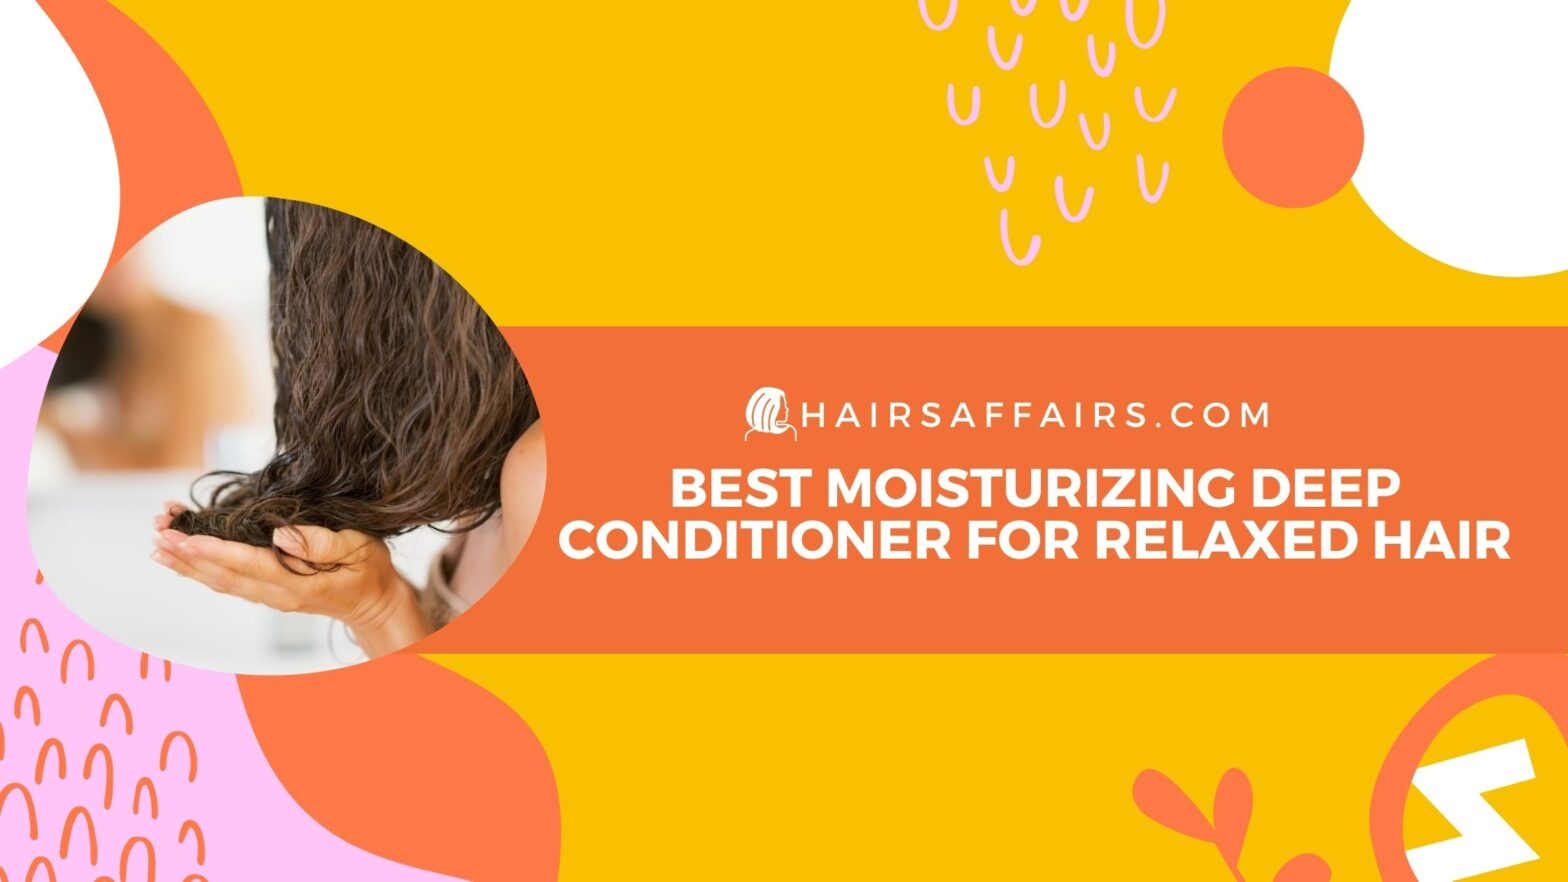 HA-Best-Moisturizing-Deep-Conditioner-for-Relaxed-Hair